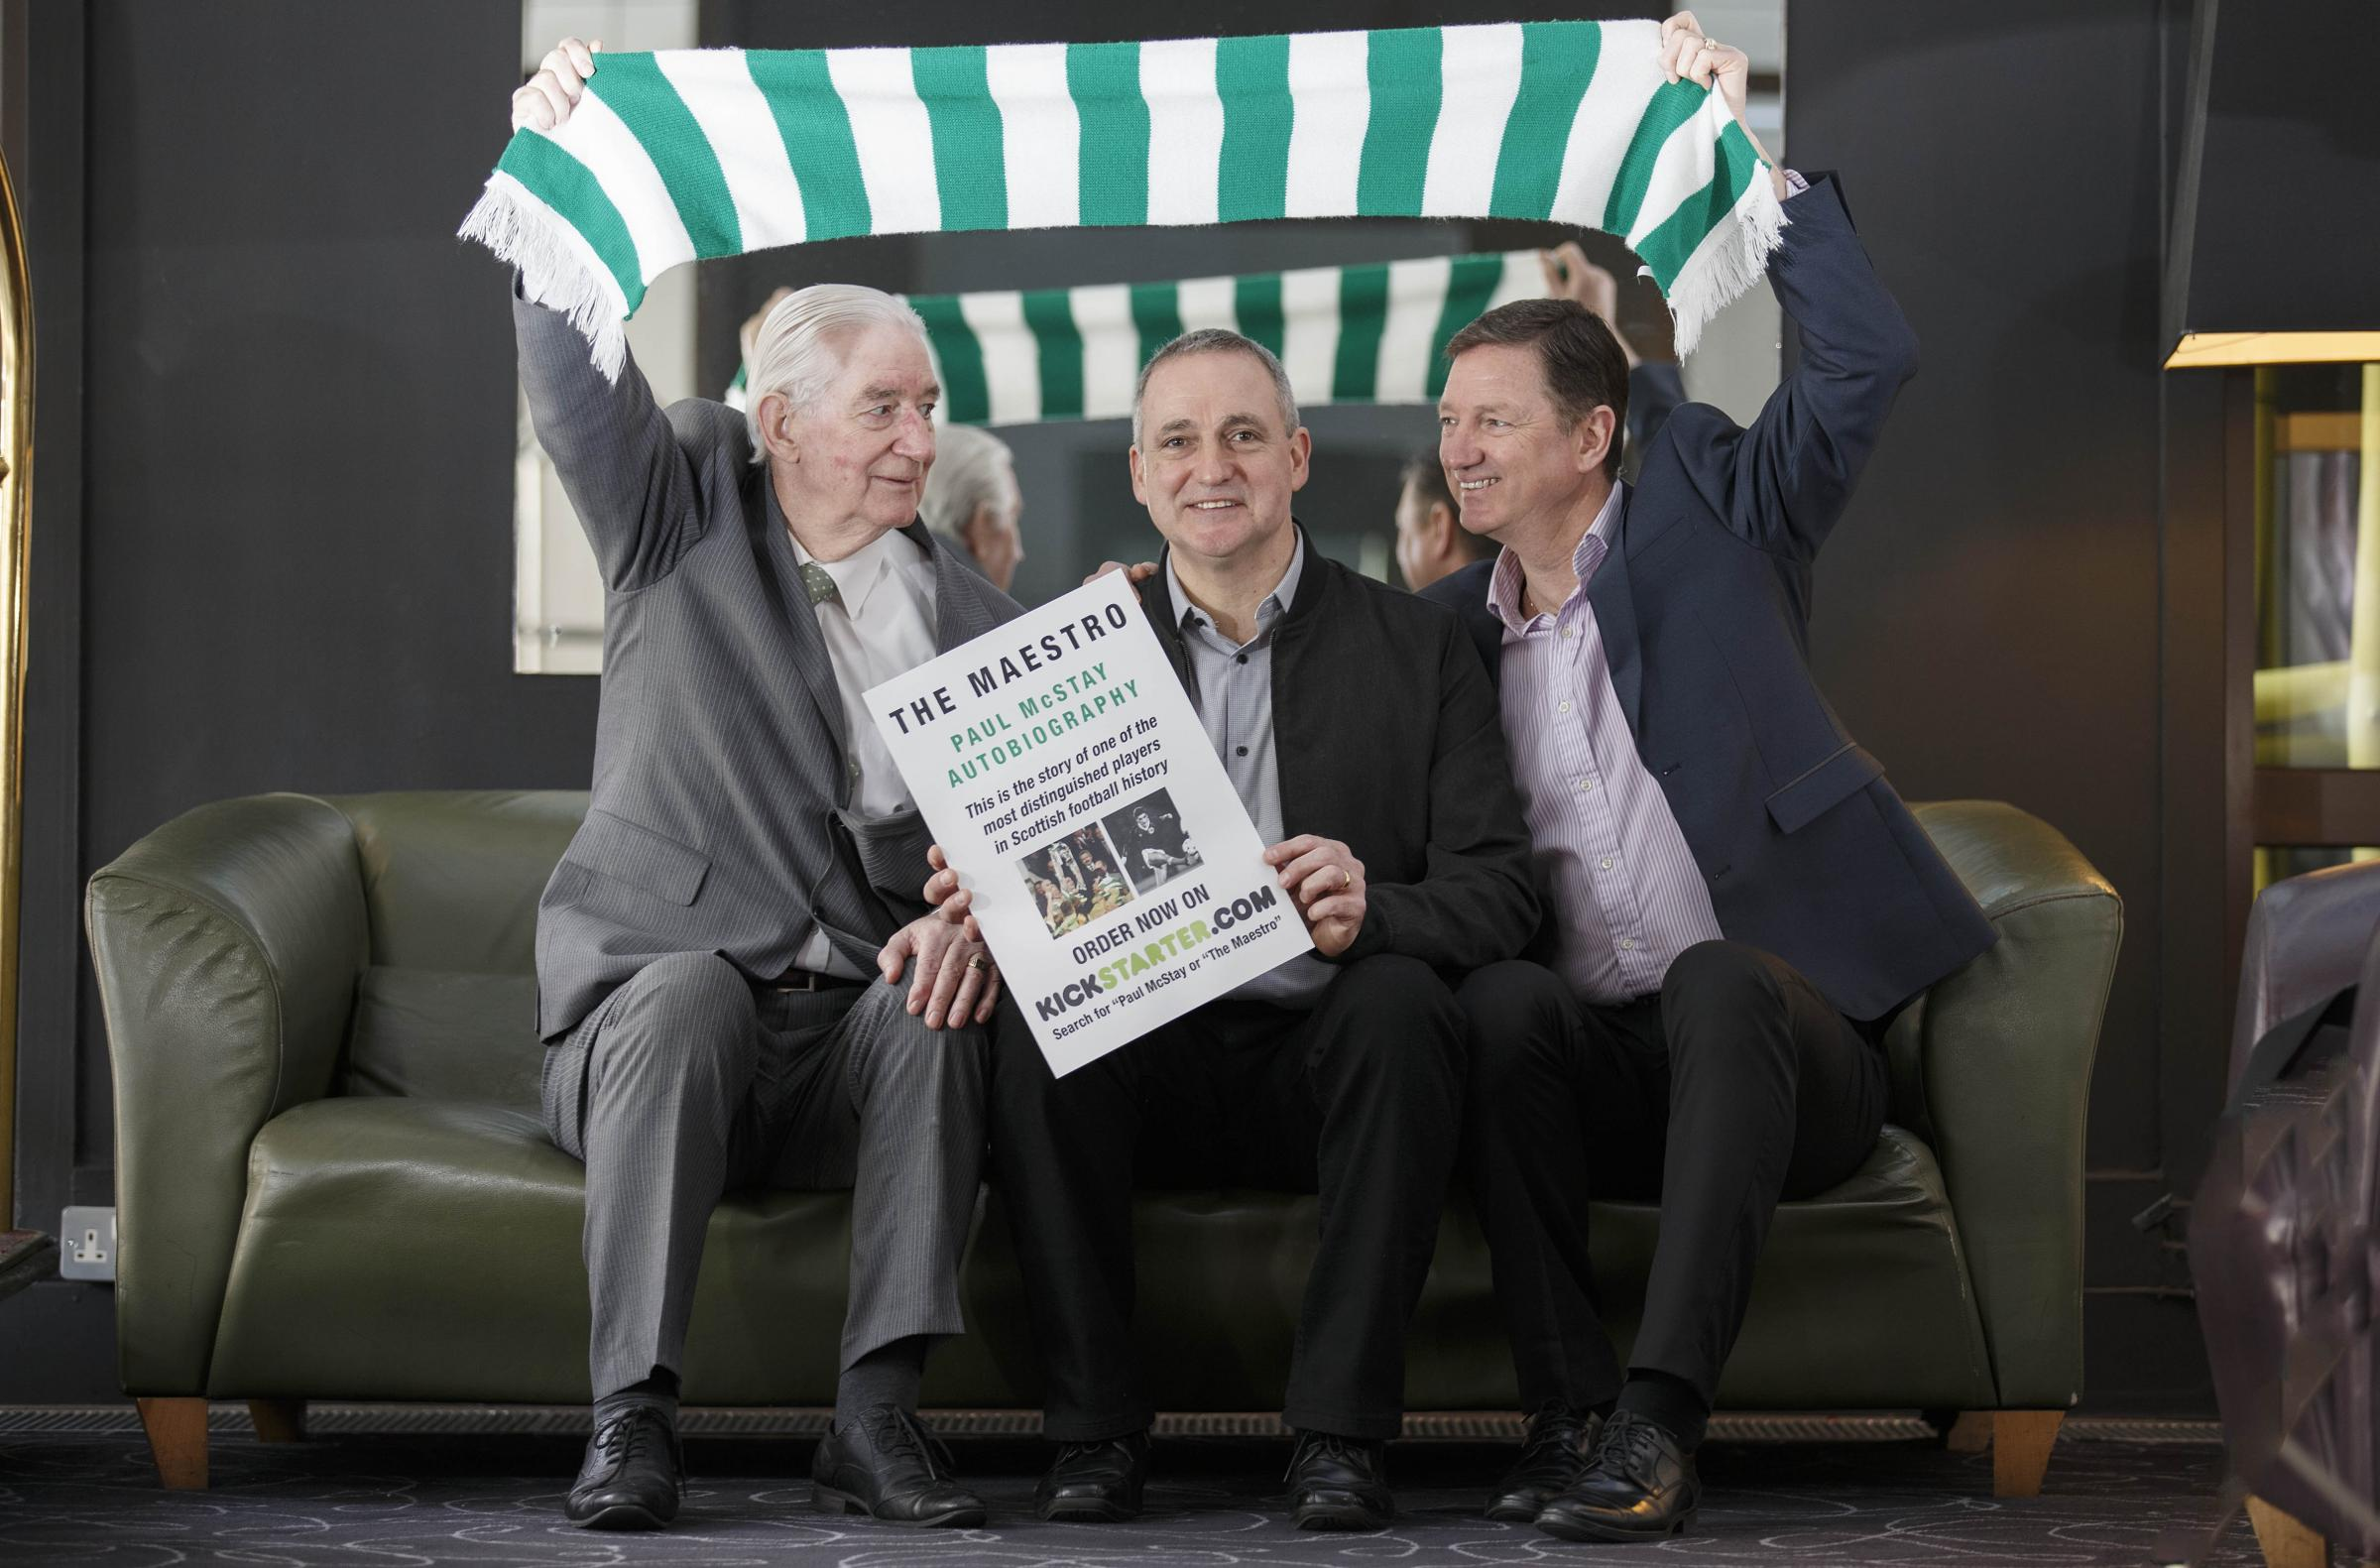 Dad John and brother Willie join Paul McStay at the launch of his autobiography